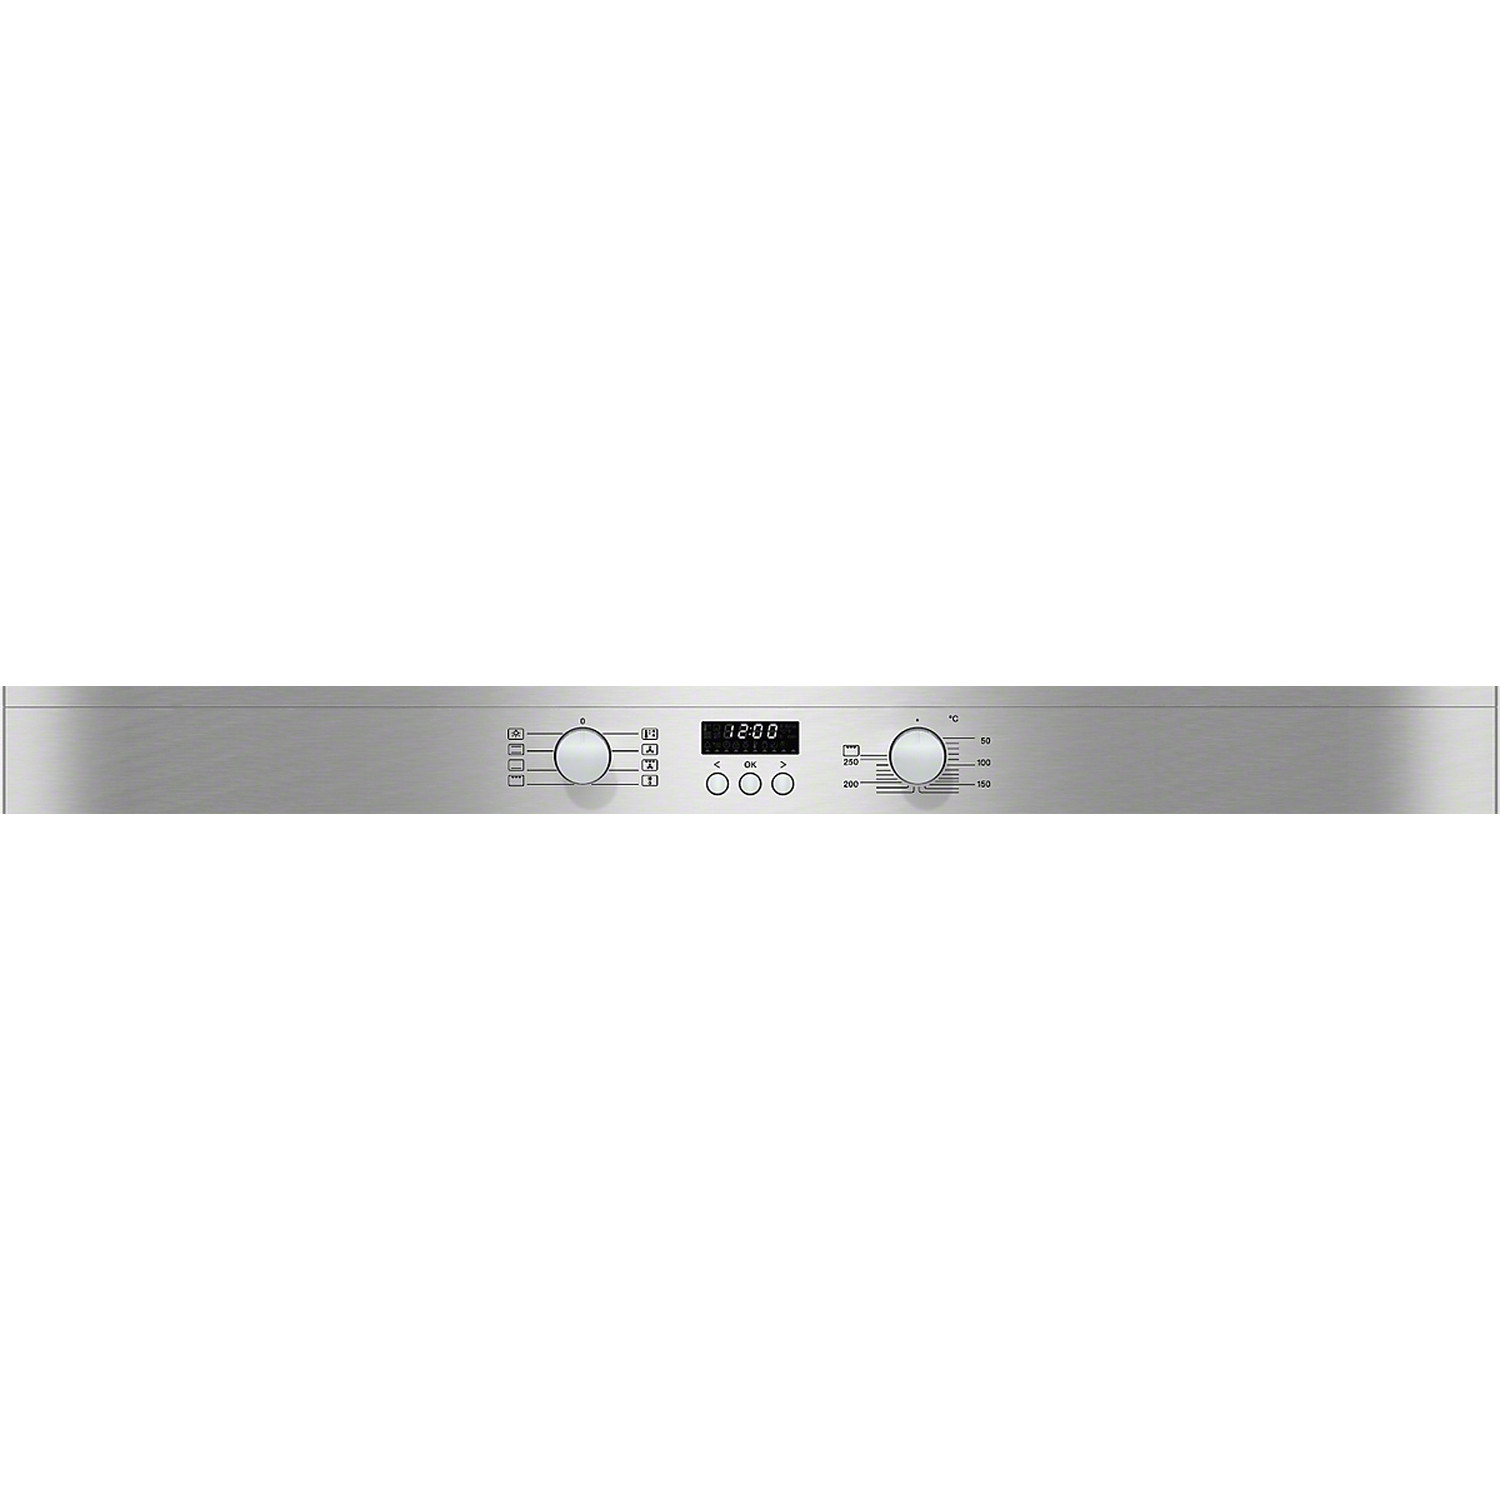 Miele H 6290 B CleanSteel 90cm wide oven